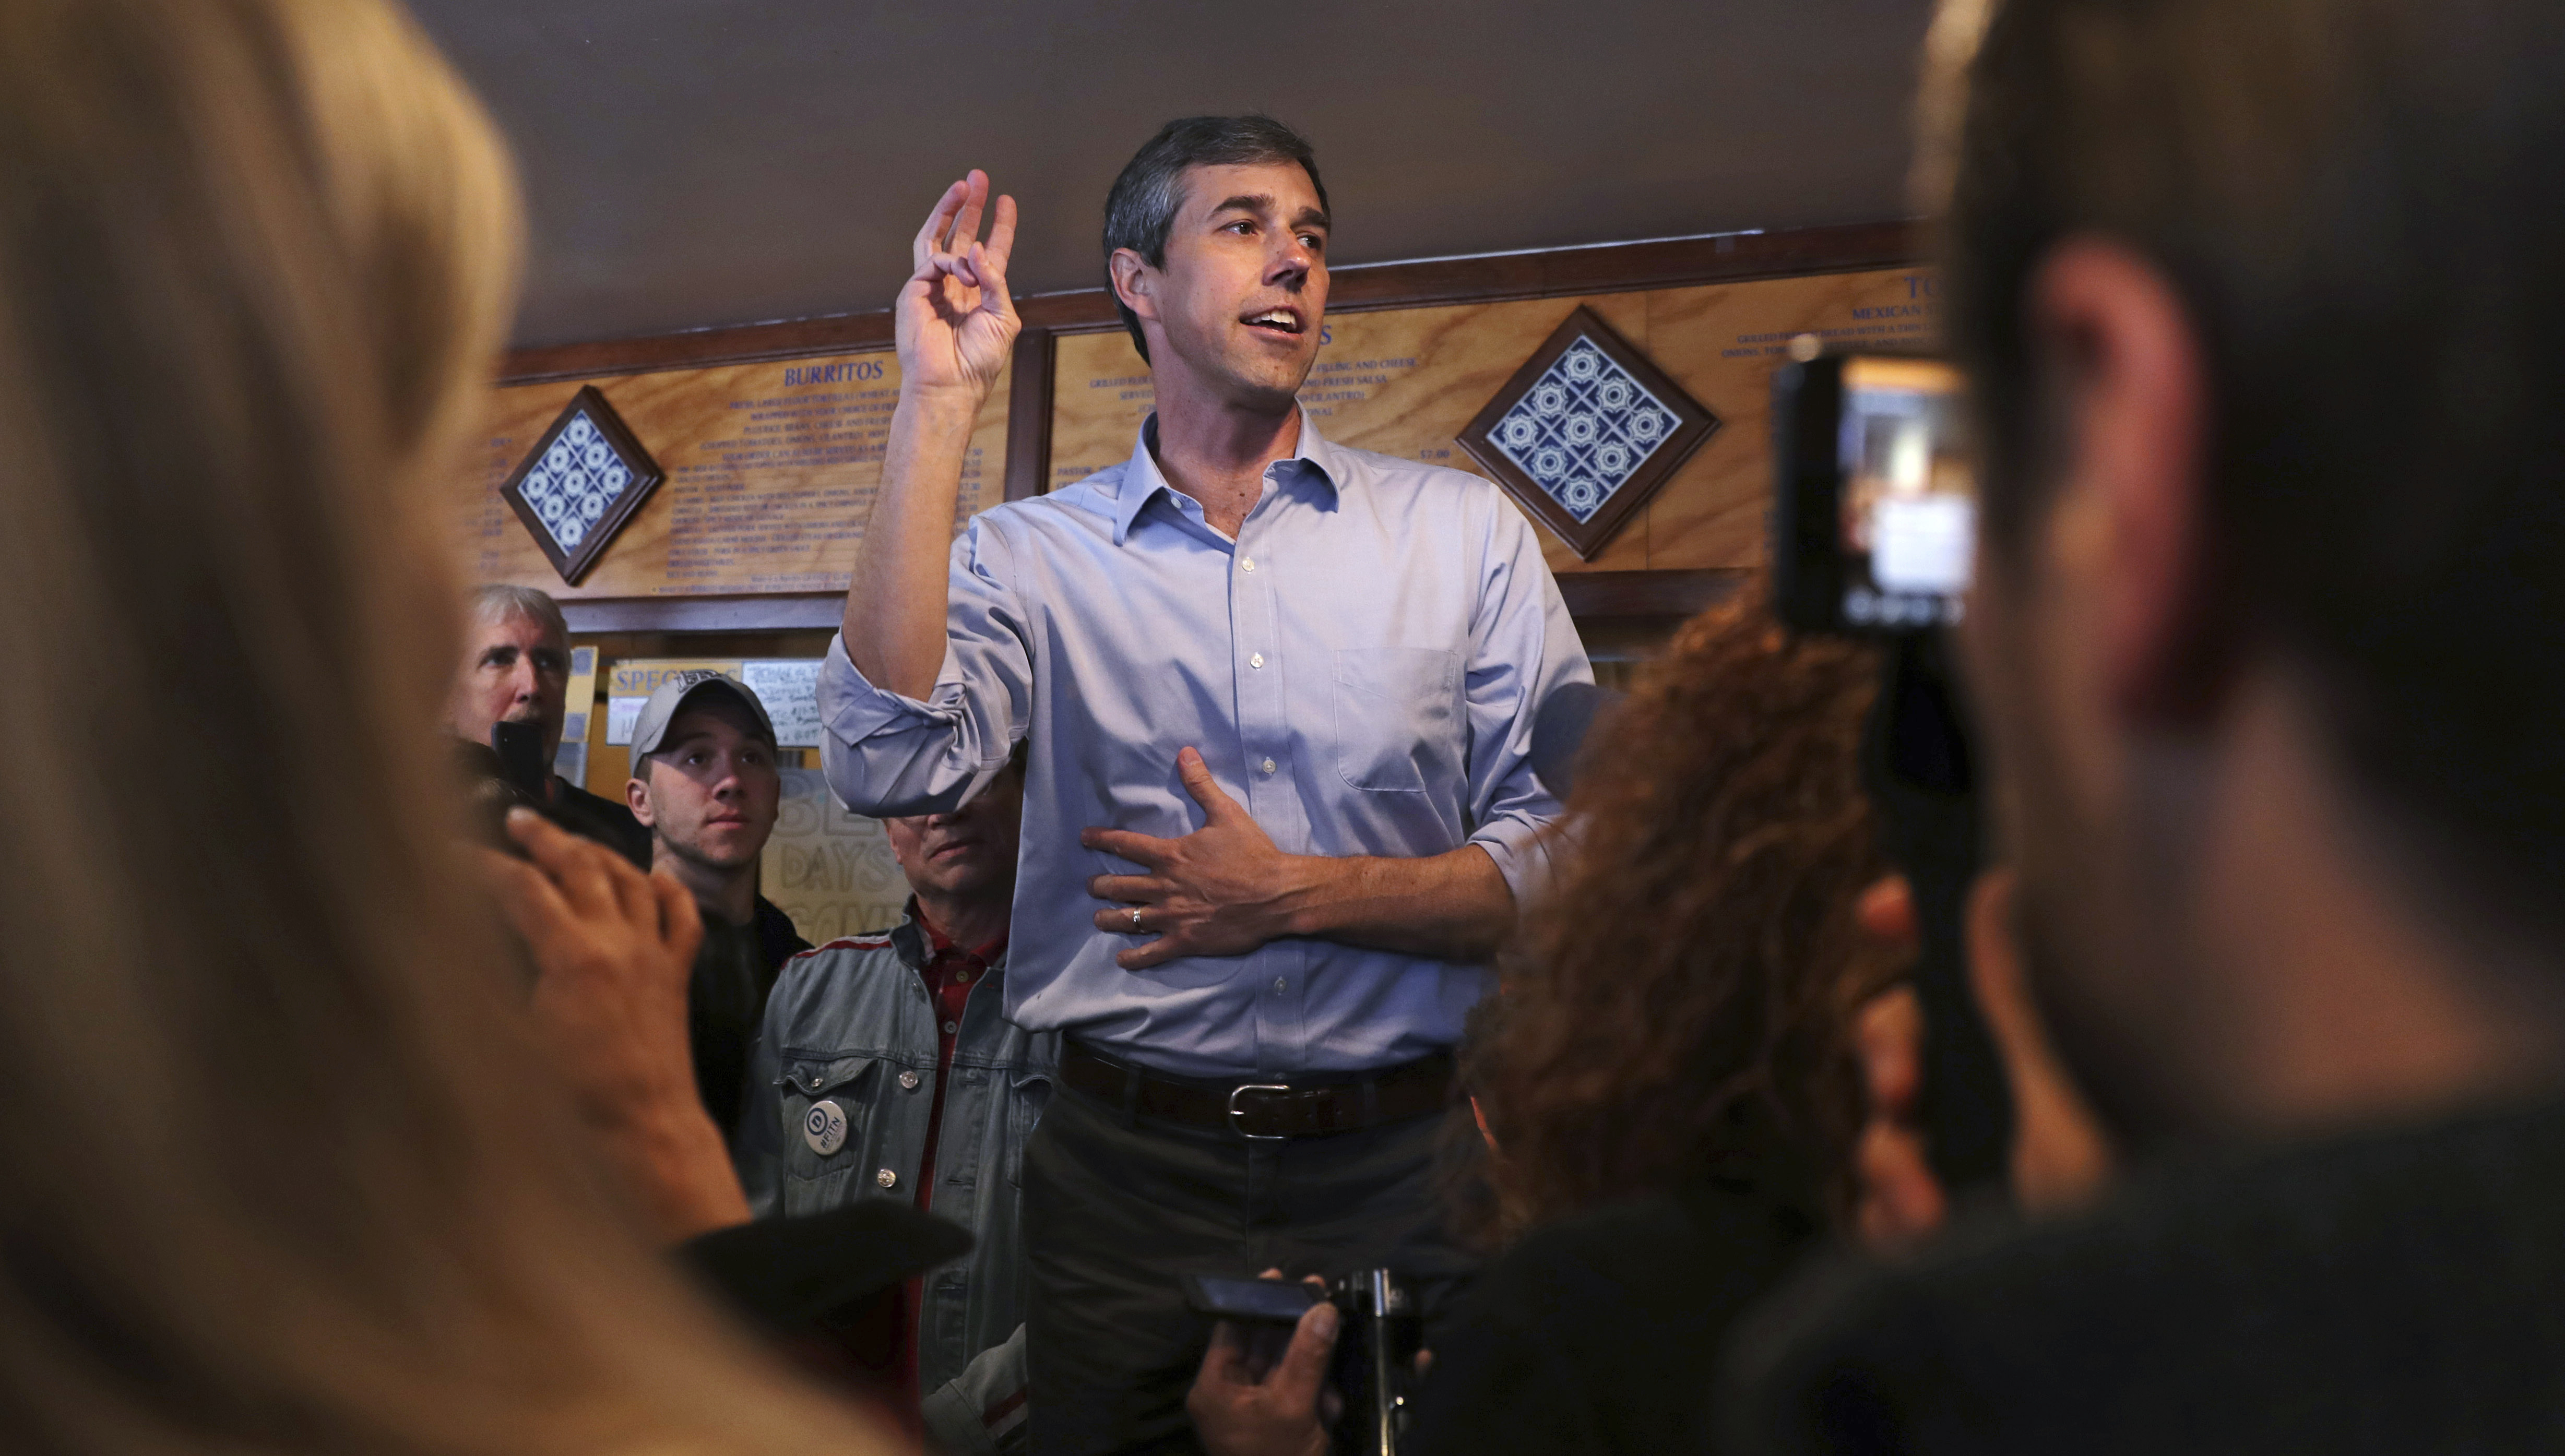 Former Texas congressman Beto O'Rourke addresses a gathering during a campaign stop at a restaurant in Manchester, New Hampshire,  March 21, 2019.